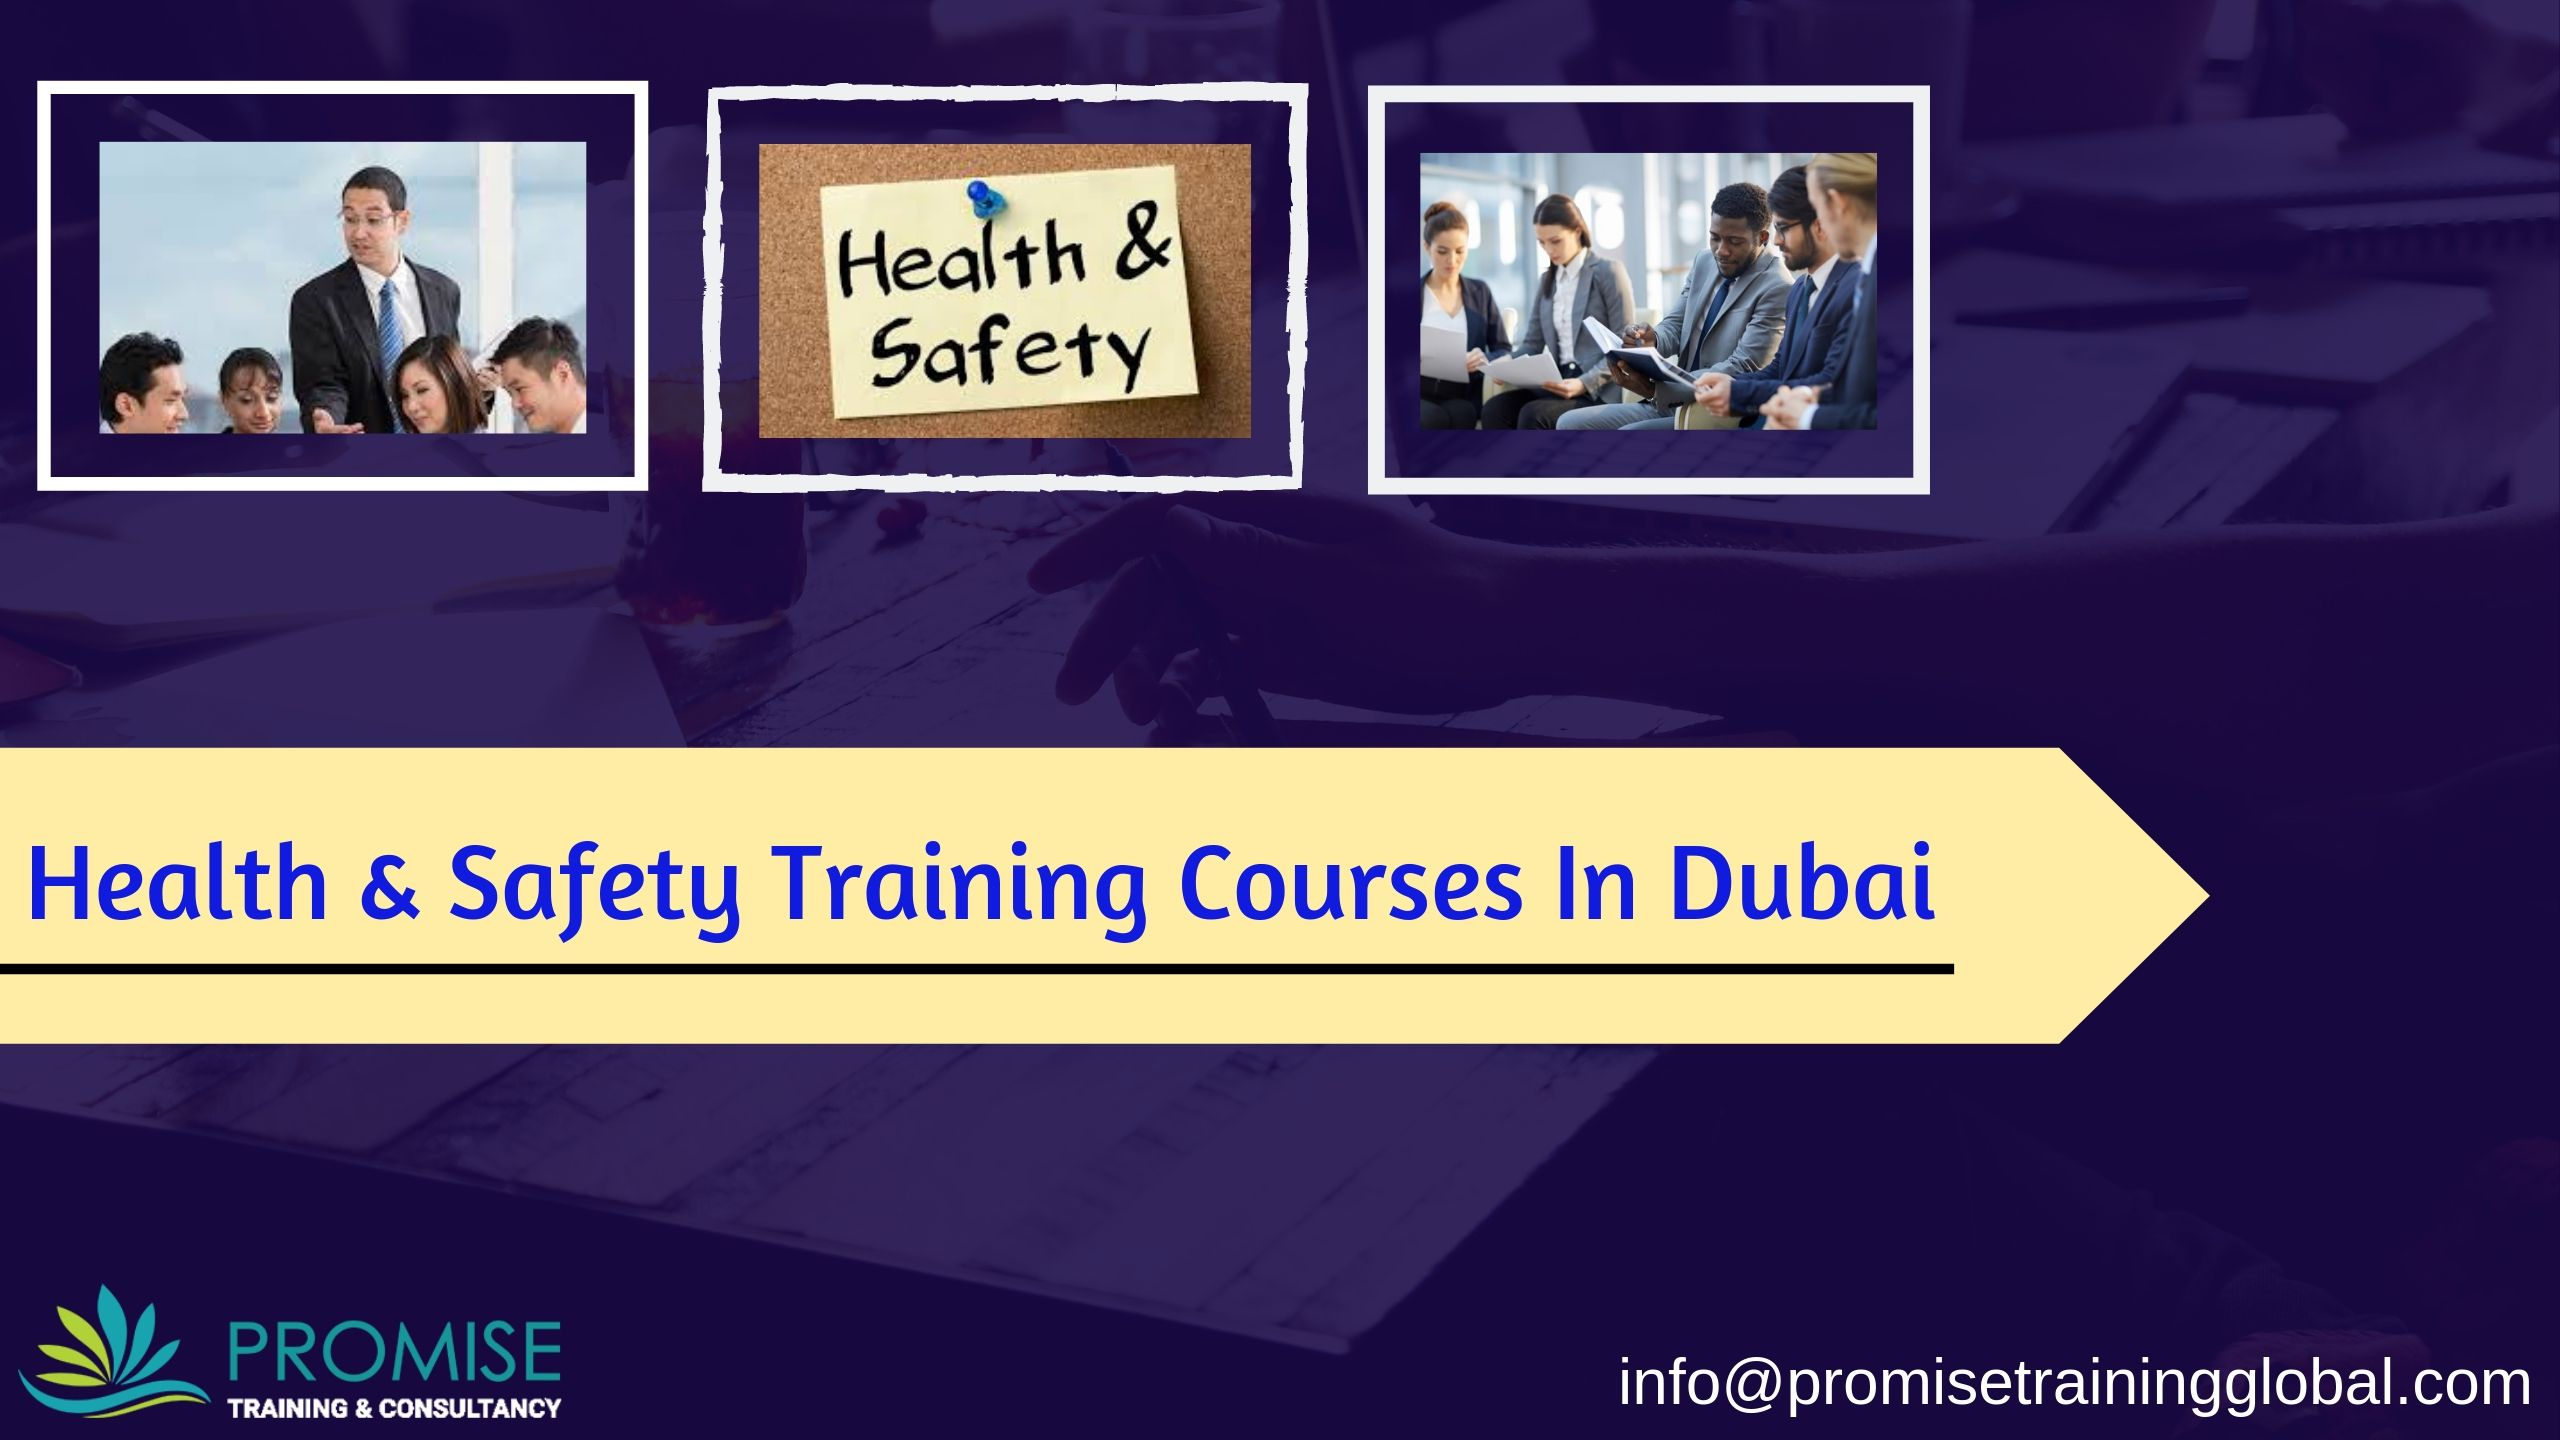 Health & Safety Training Courses Safety training, Health